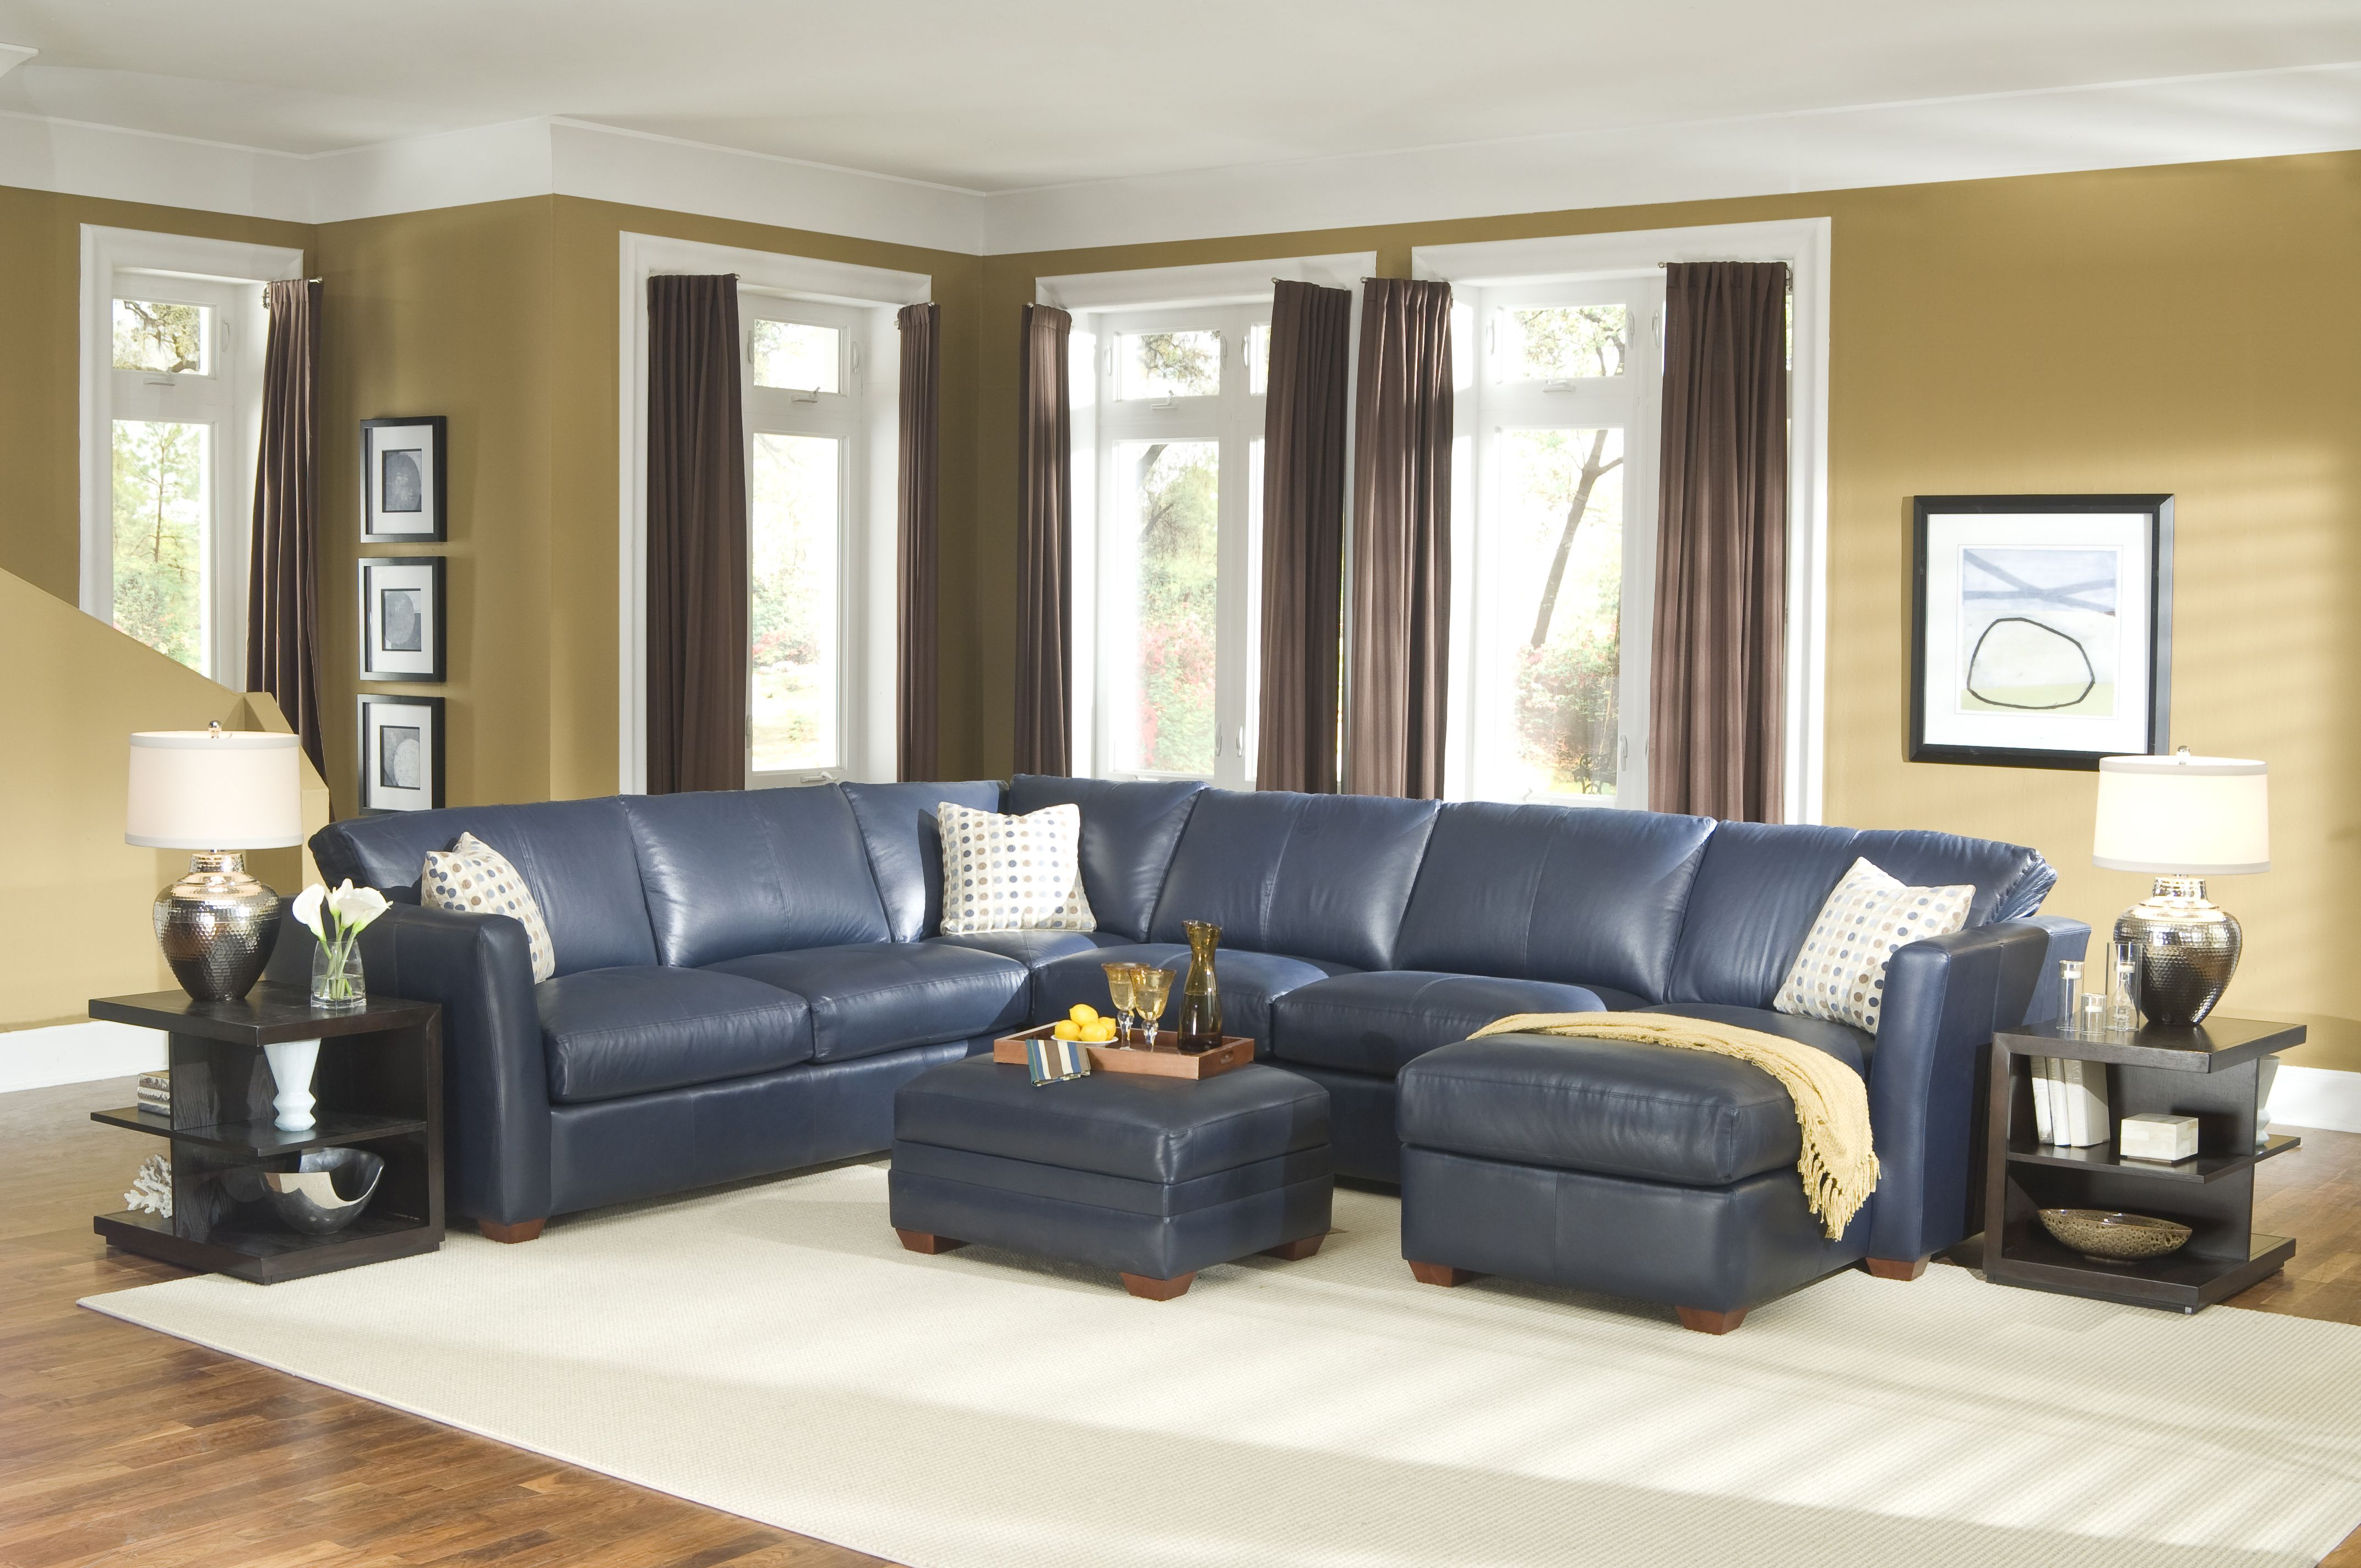 Best Vincenzo Leather Sectional Jpg 4 288×2 848 Pixels Living 400 x 300